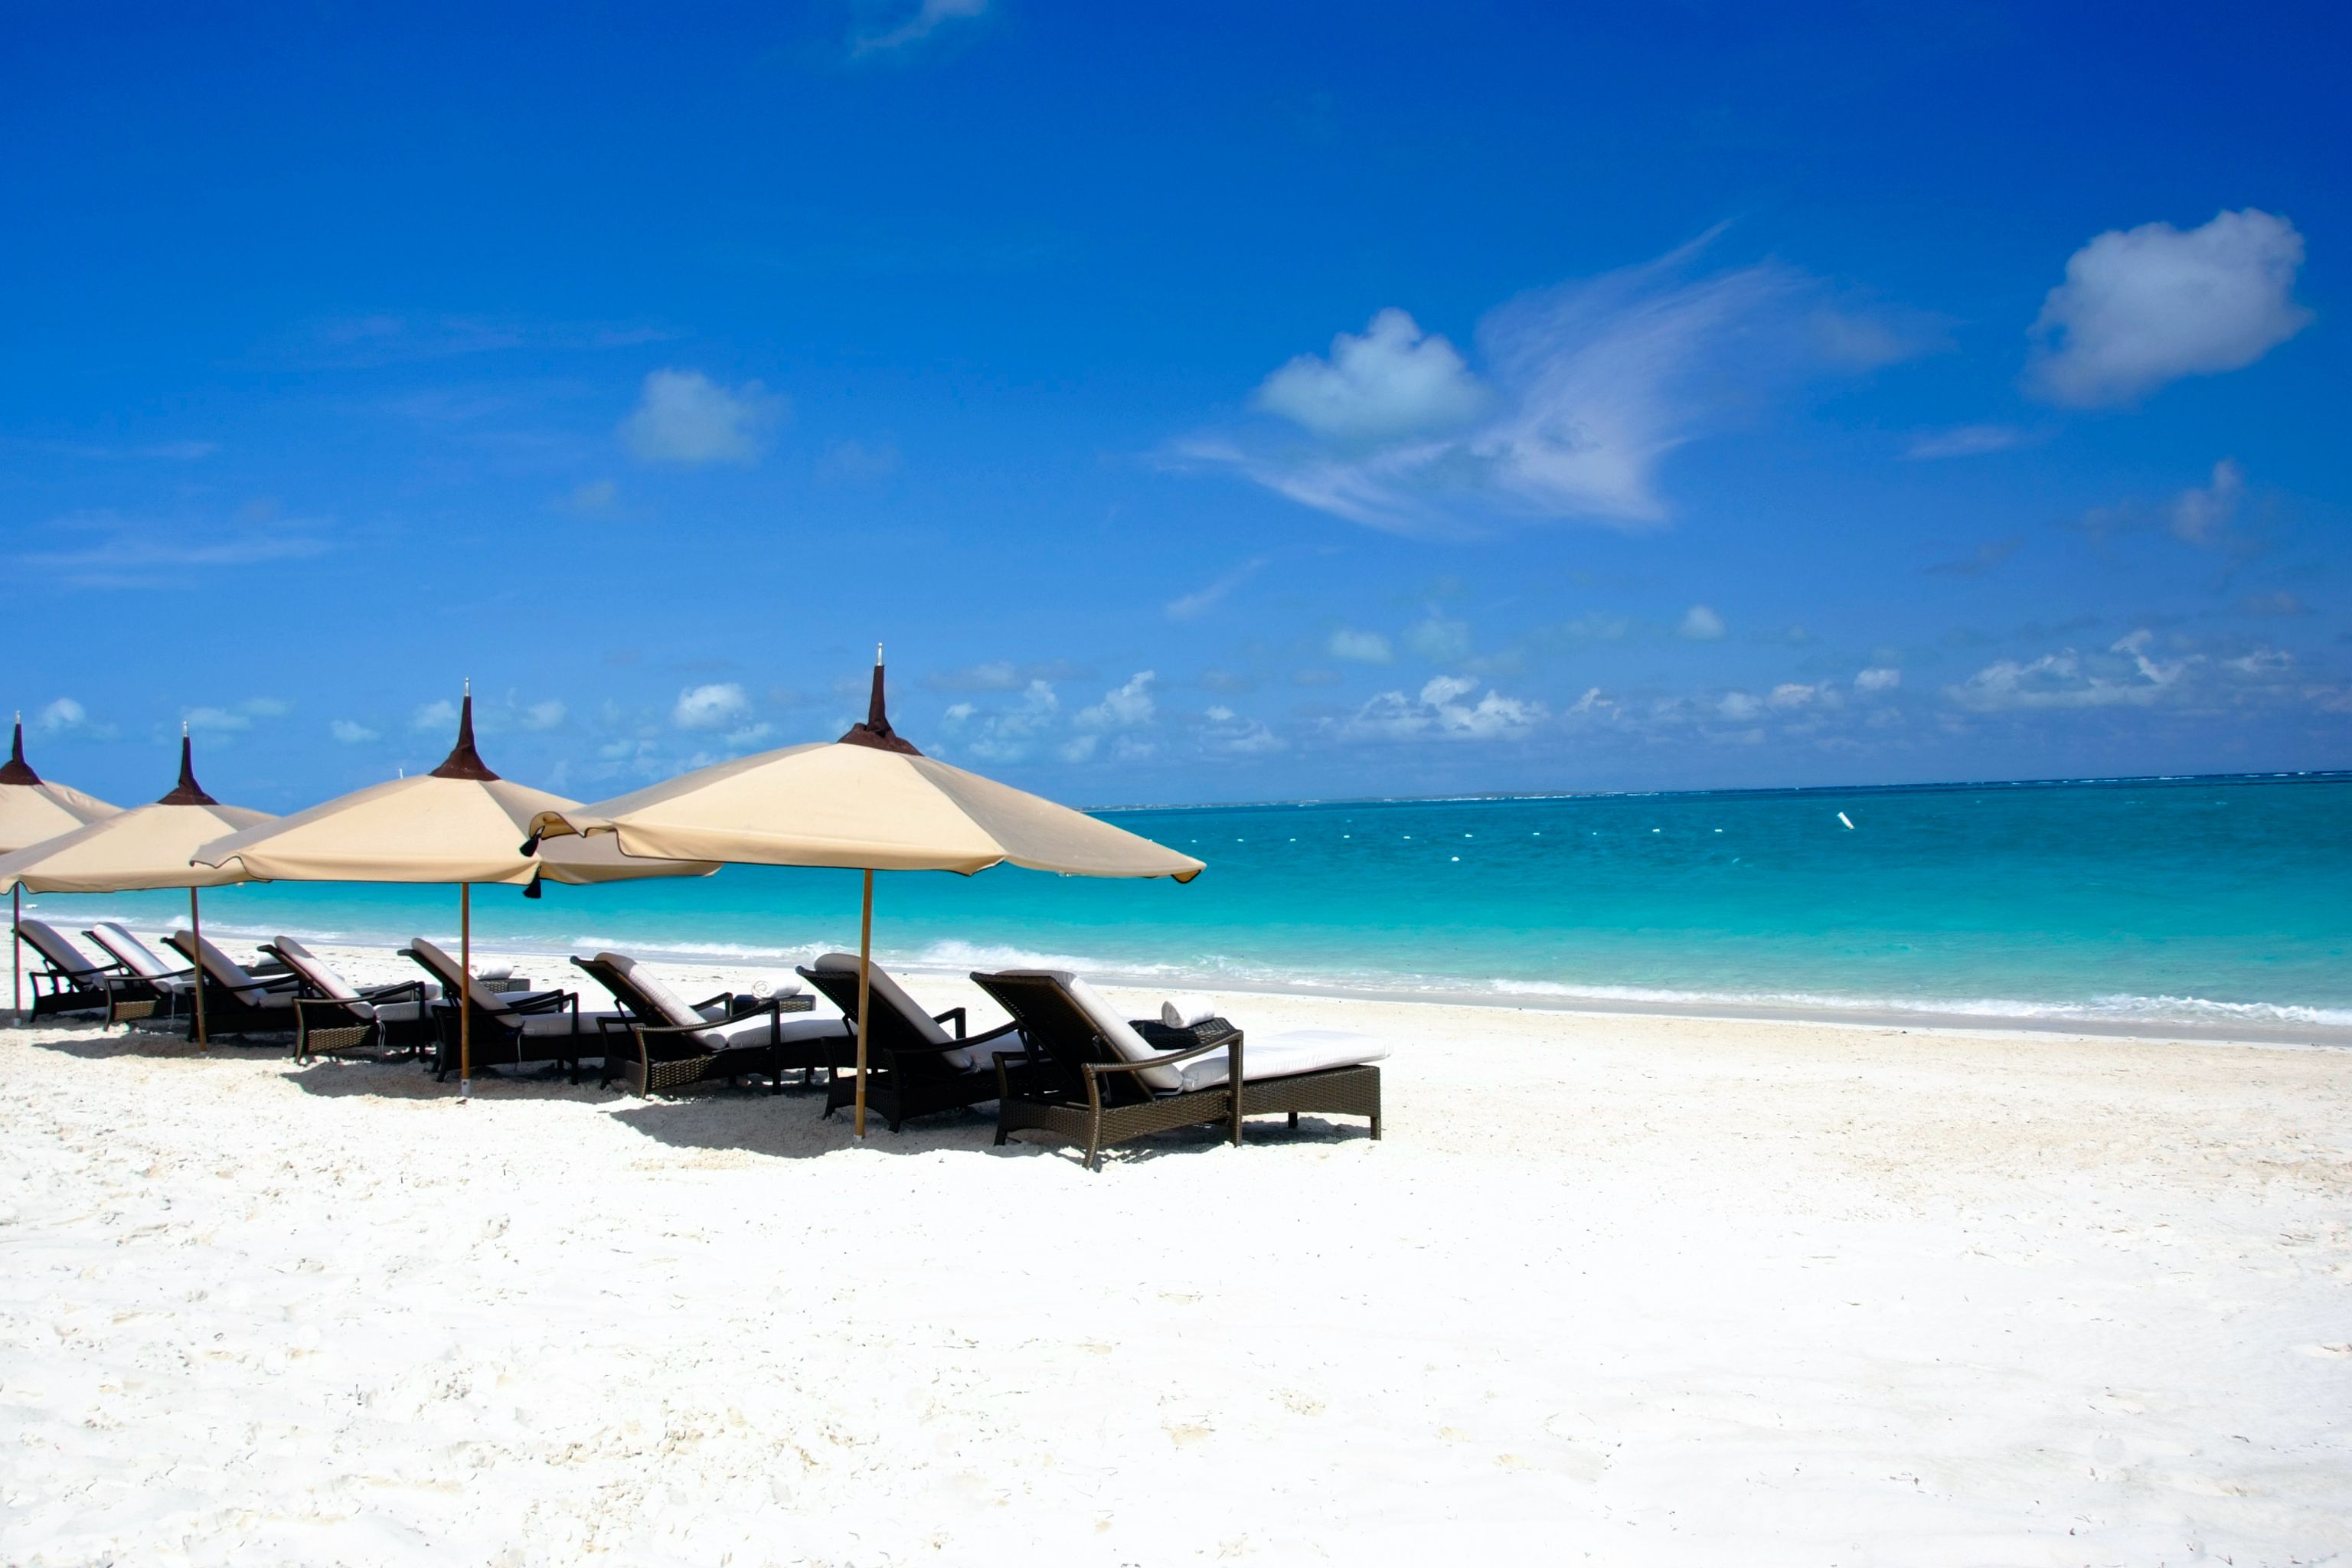 Paradise!! Gorgeous private white beaches, soft sand....Providenciales, Turks and Caicos Islands....missing this ;'' @Morgan Murray @Madison McCoy @Courtney Evans